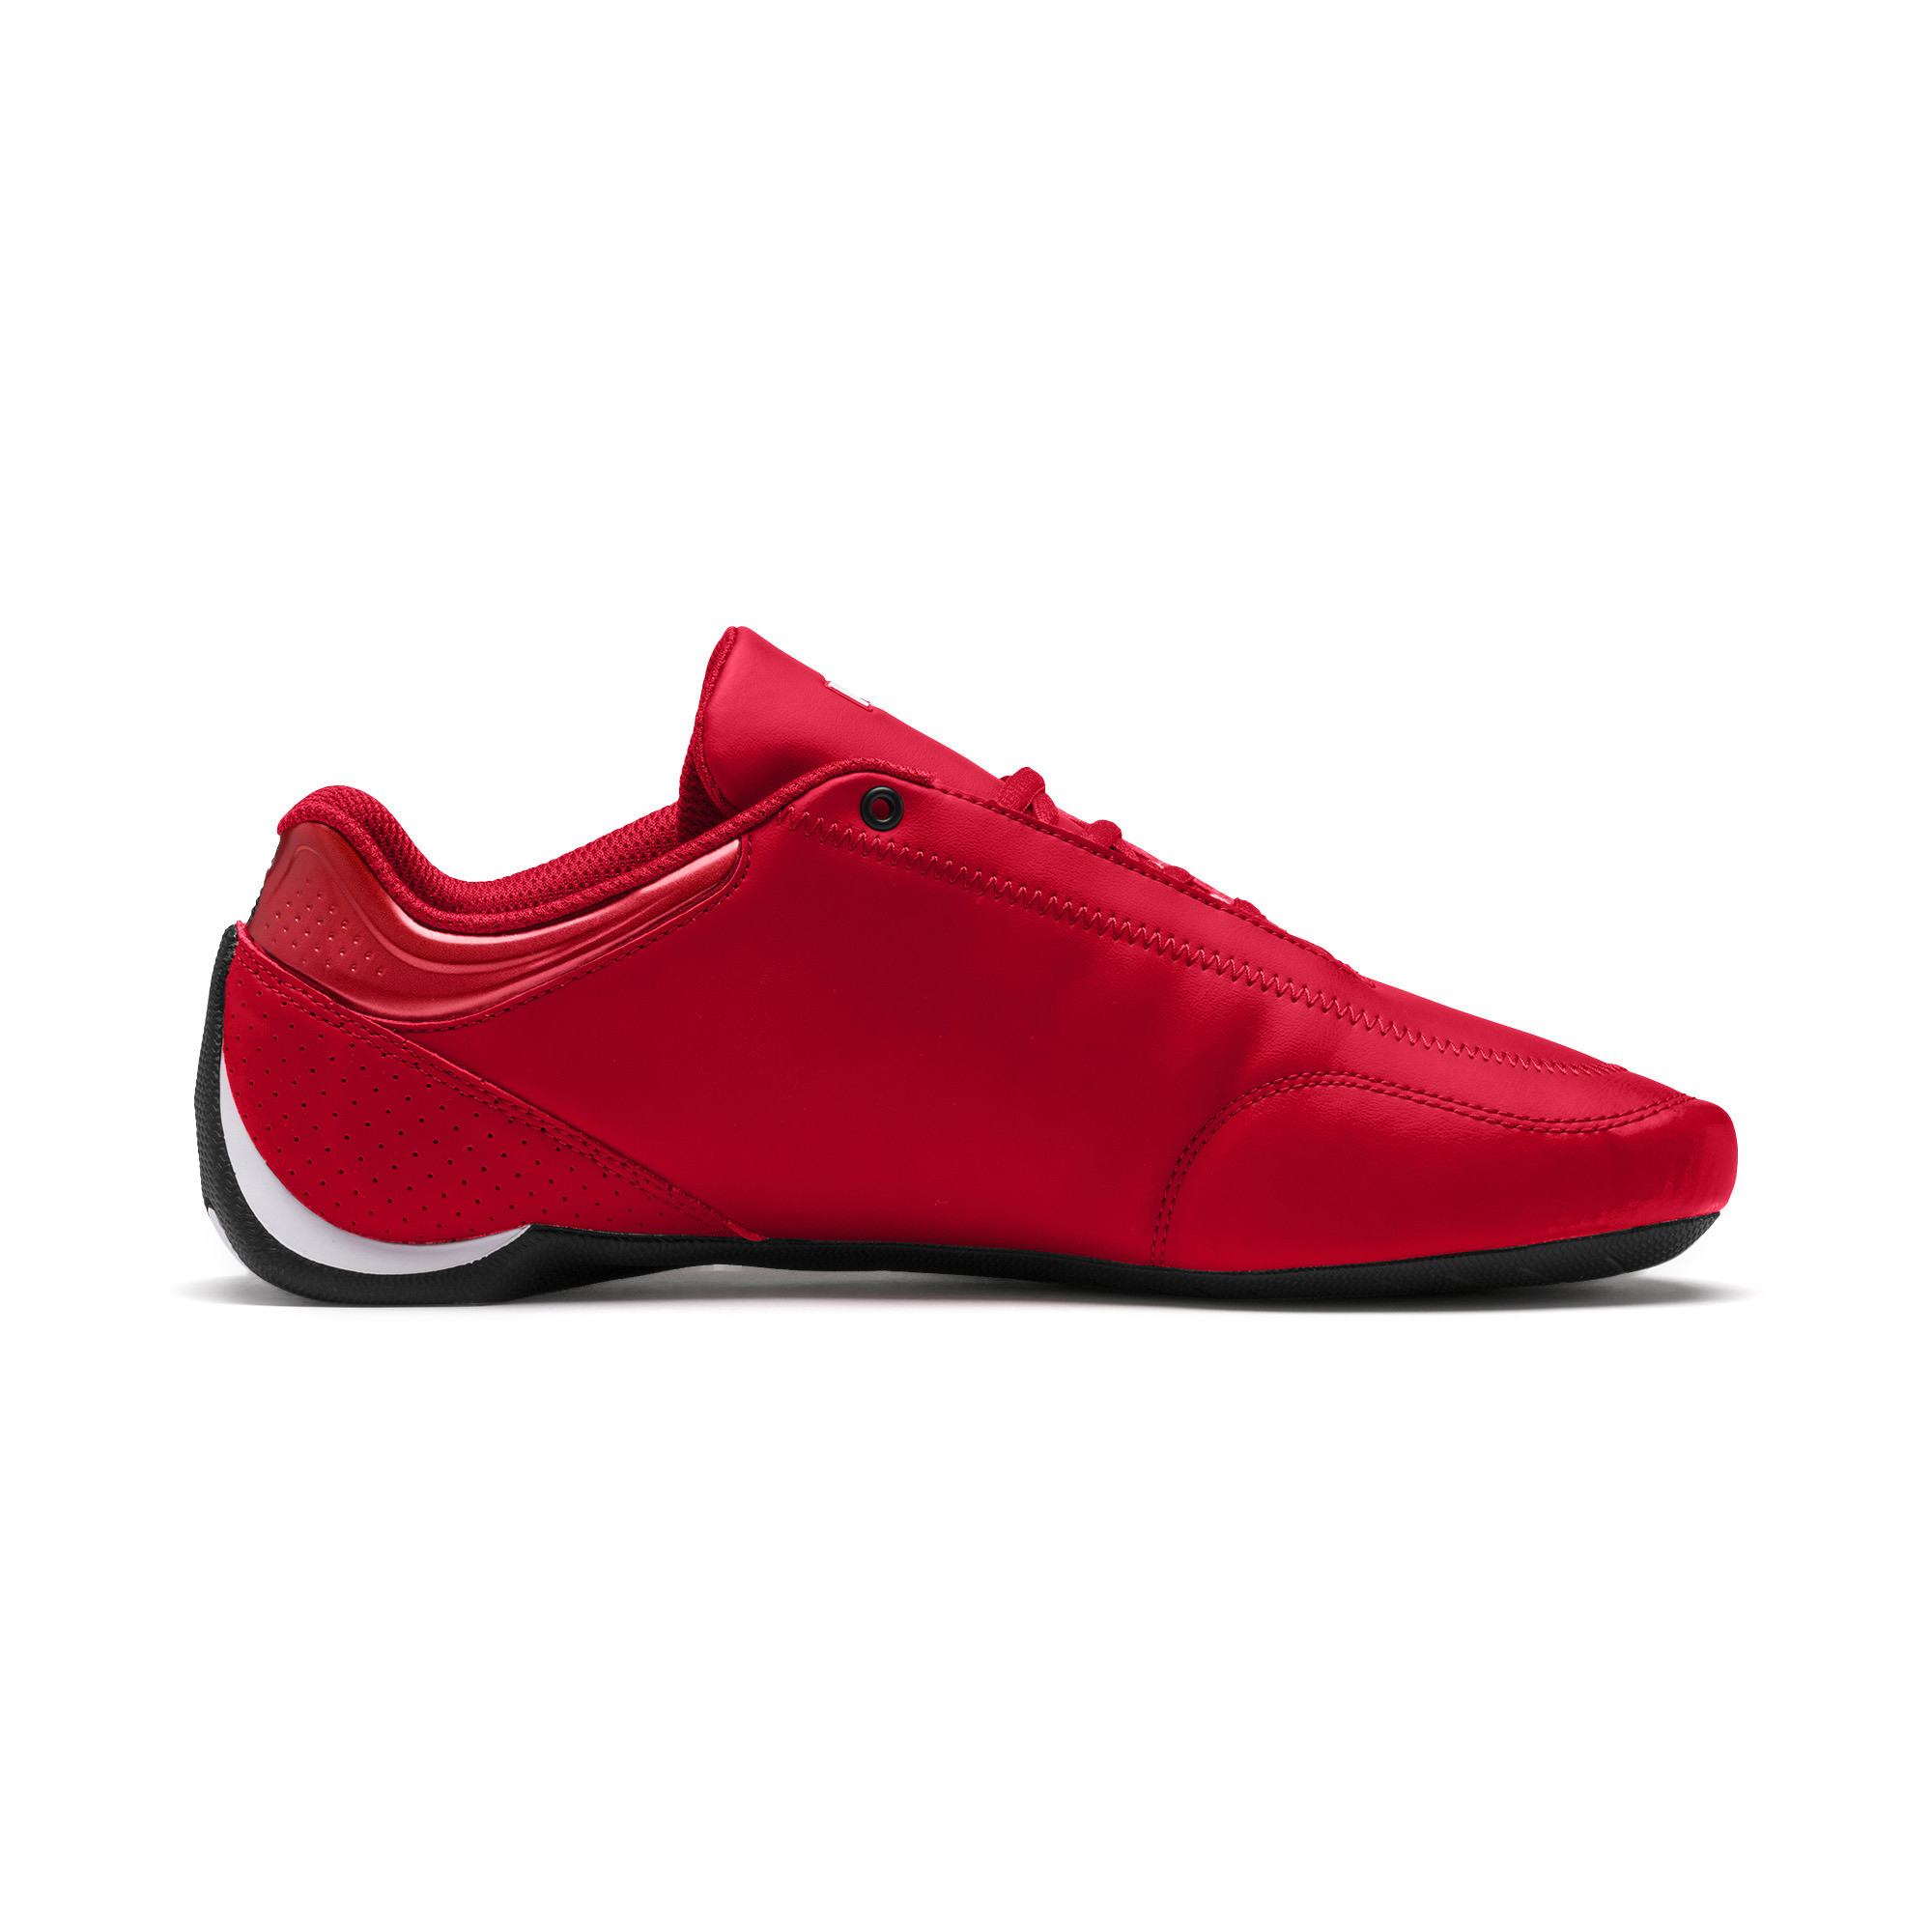 PUMA-Scuderia-Ferrari-Future-Kart-Cat-Men-039-s-Shoes-Men-Shoe-Auto thumbnail 14